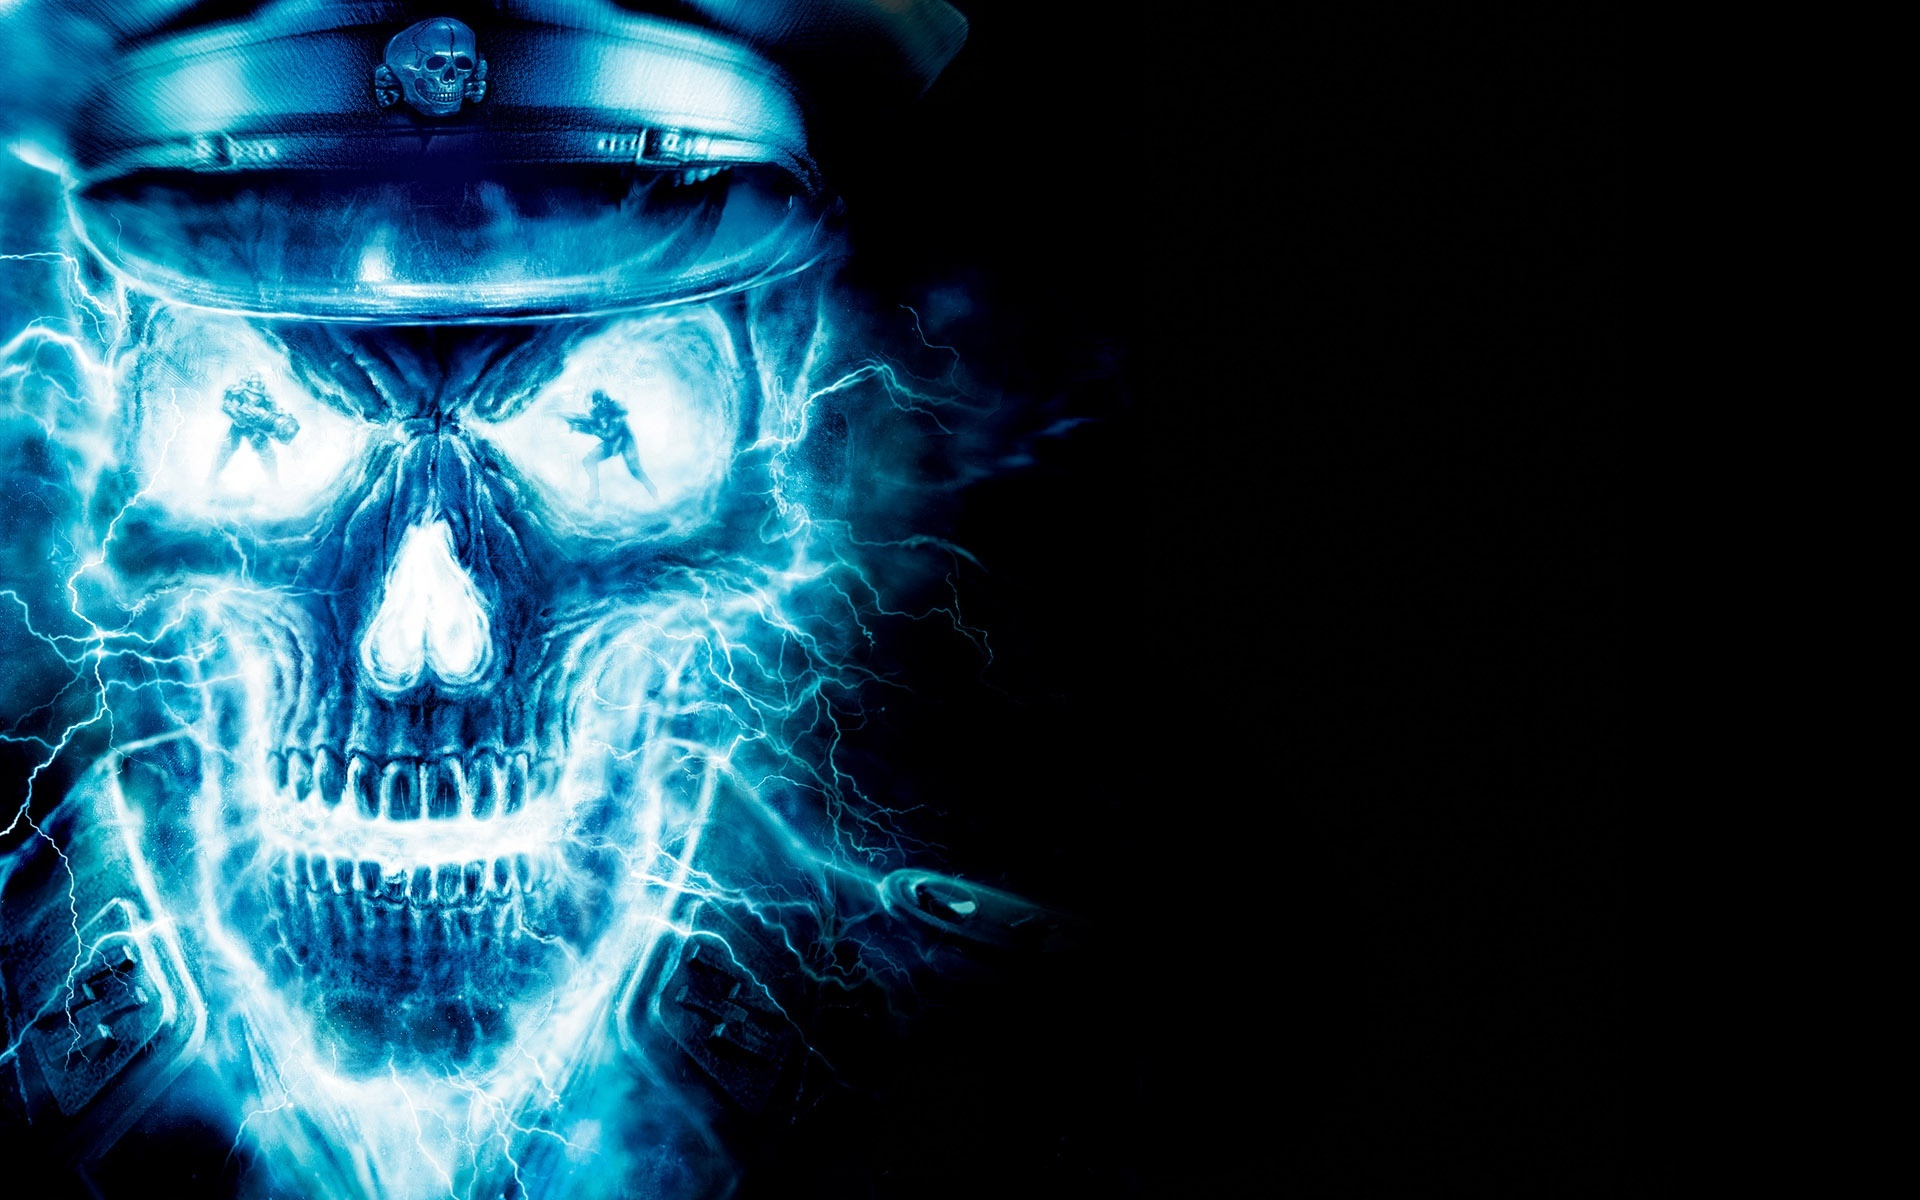 Skull Wallpapers, Awesome Skull Pictures and Wallpapers  1920x1200